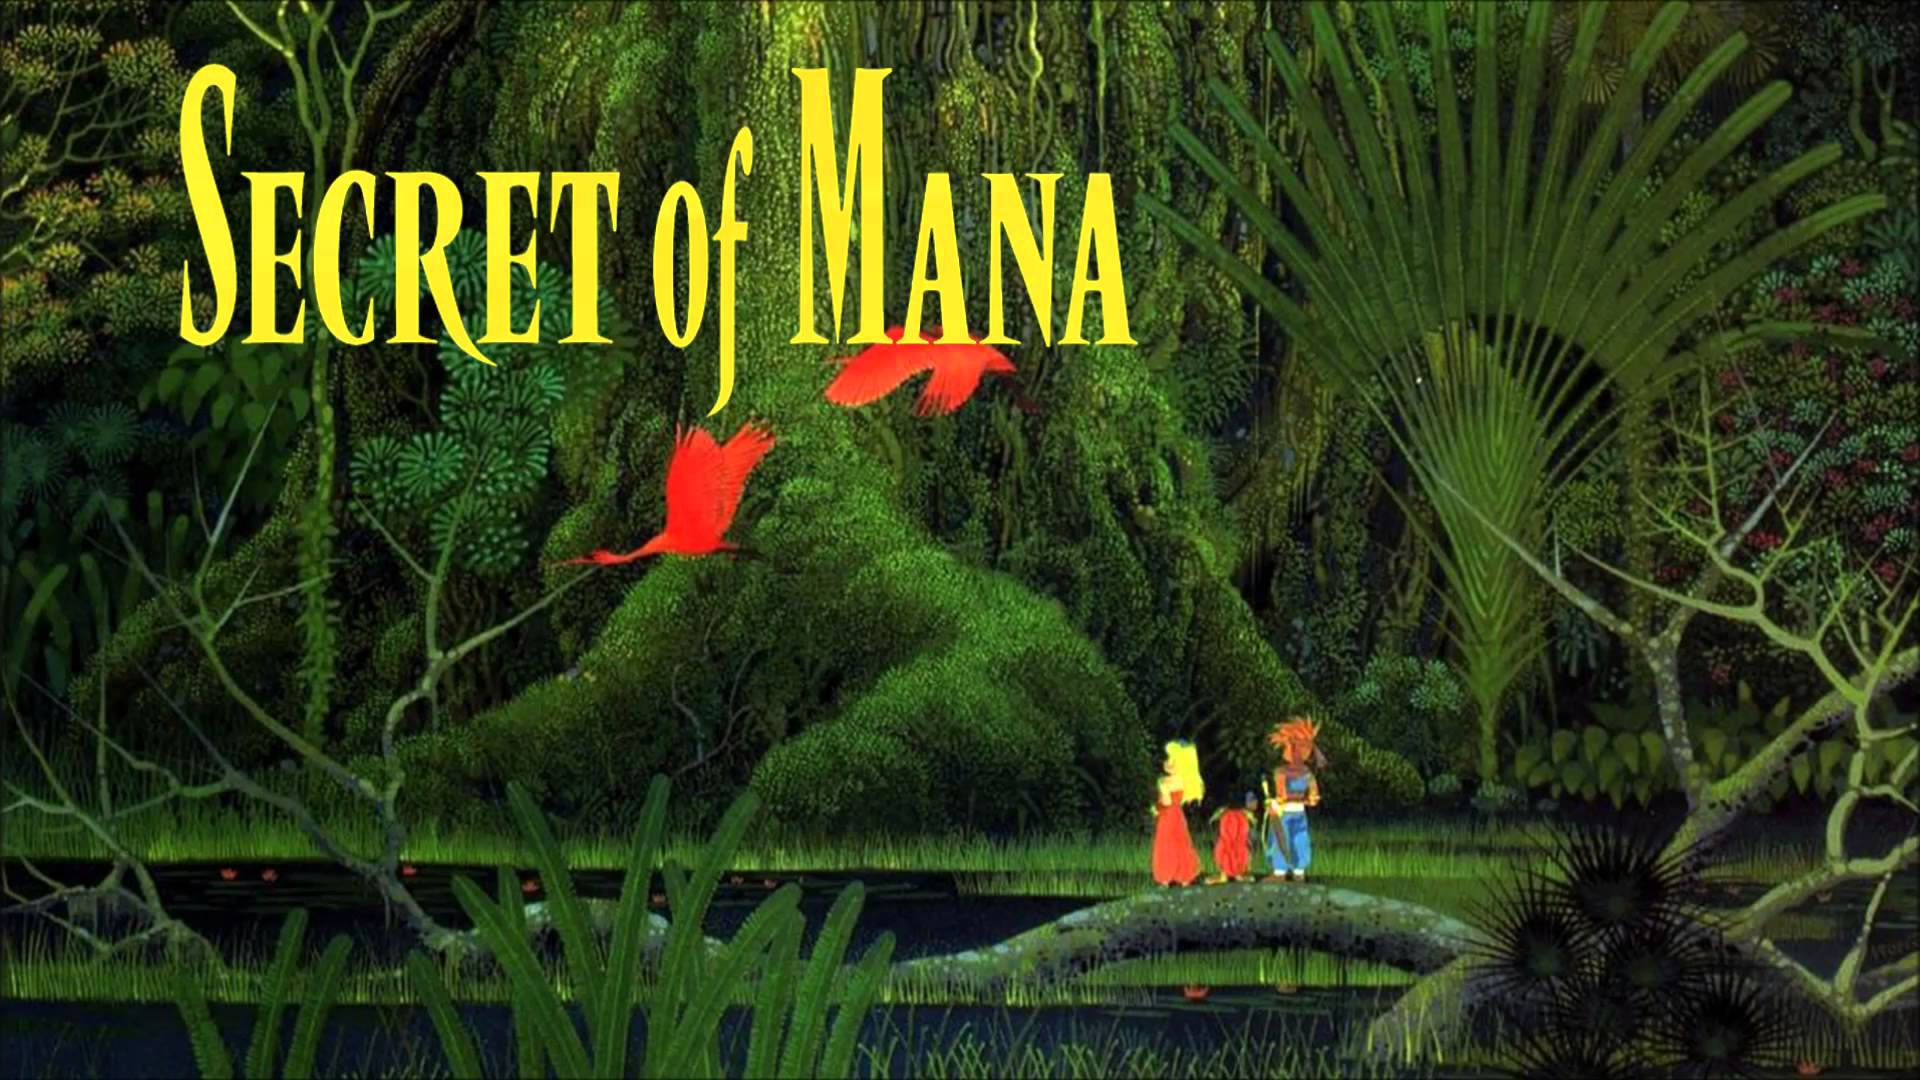 Sony Reveals Secret of Mana Remake for PS4 and Vita